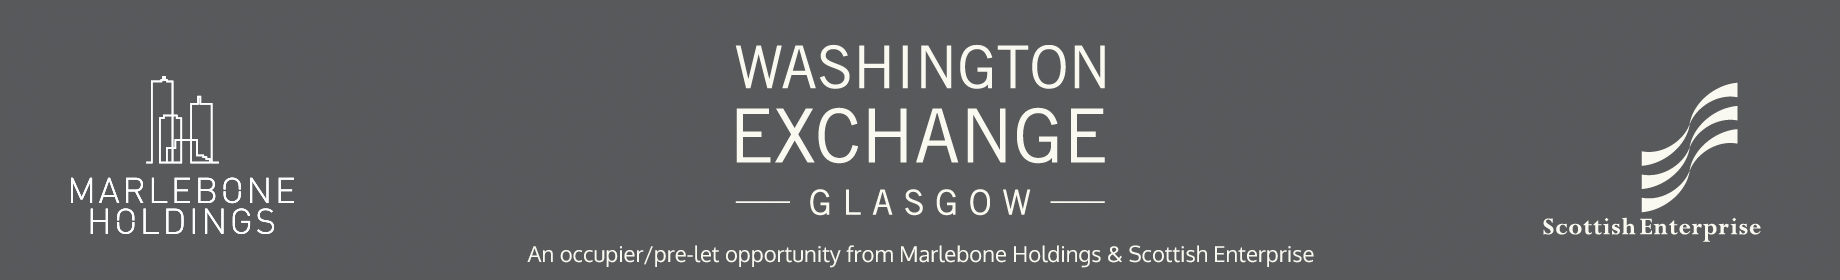 An occupier/pre-let opportunity from Marlebone Ltd & Scottish Enterprise